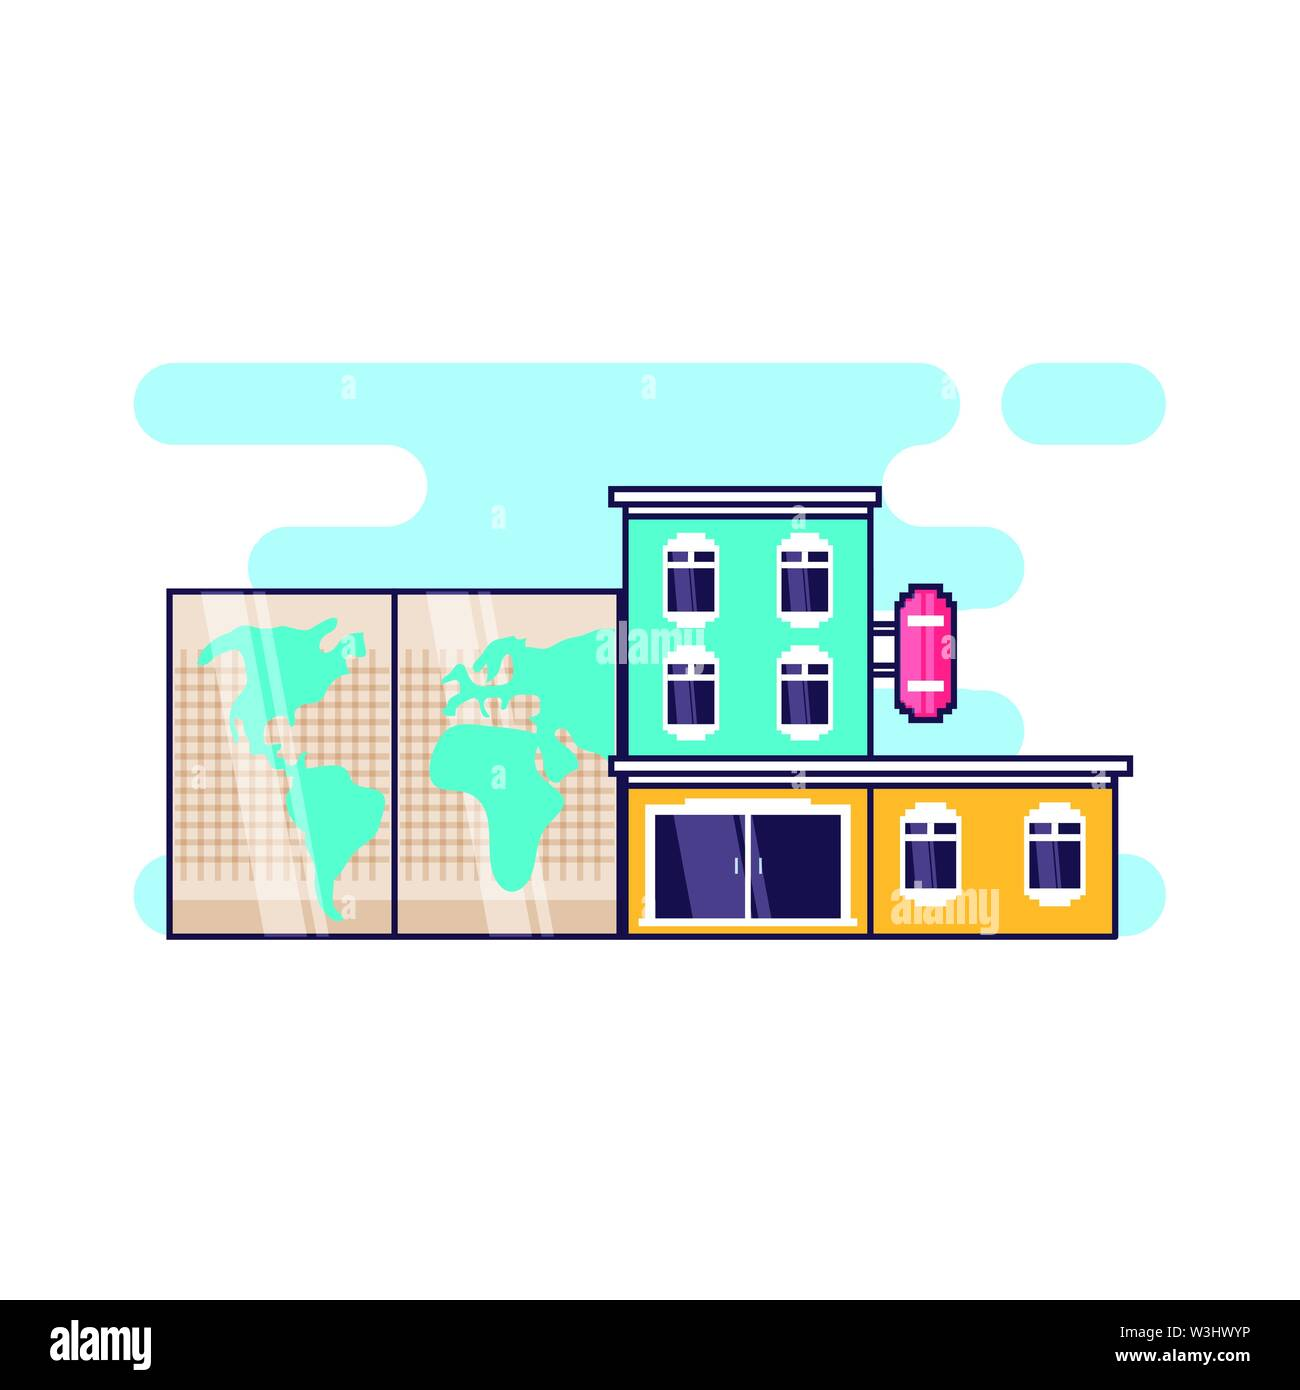 hotel building place with paper map vector illustration design - Stock Image